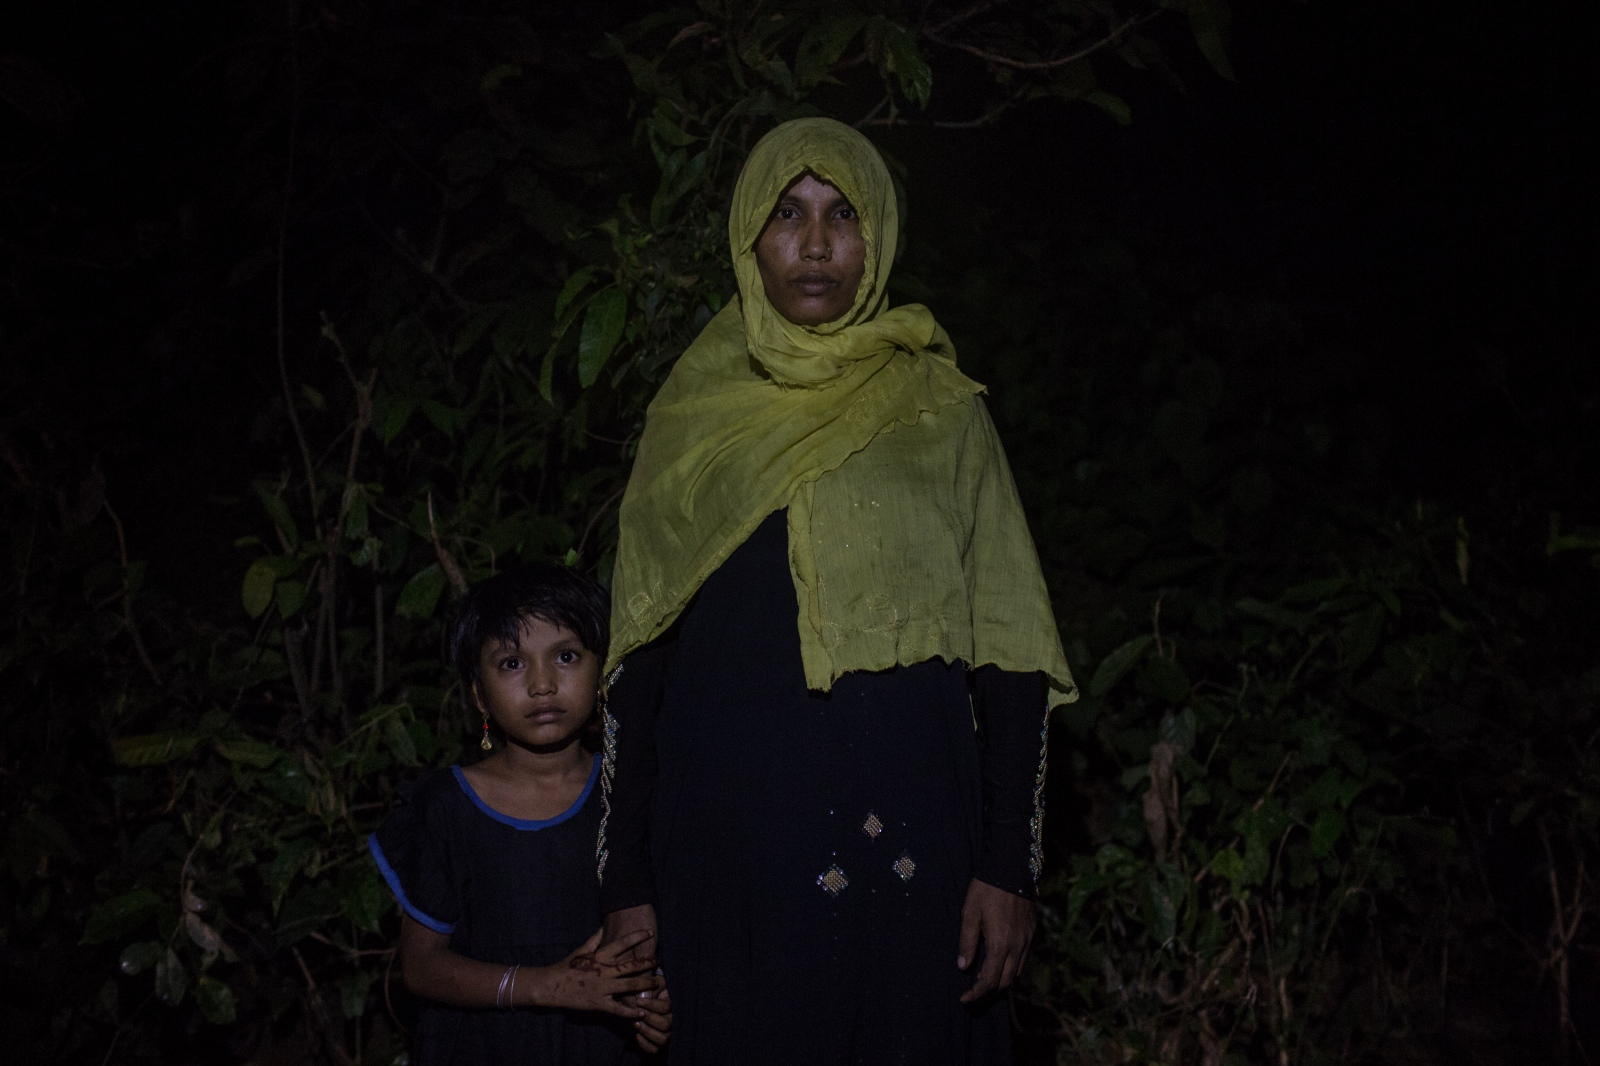 Shuma Maher, 35, waits with her daughter by the side of the road for food and cash distributions near the Balukhali refugee camp in Bangladesh on Friday September 22, 2017. Shuma's husband remains in Myanmar but she does not know if he is alive. They were separated when the military attacked their village.